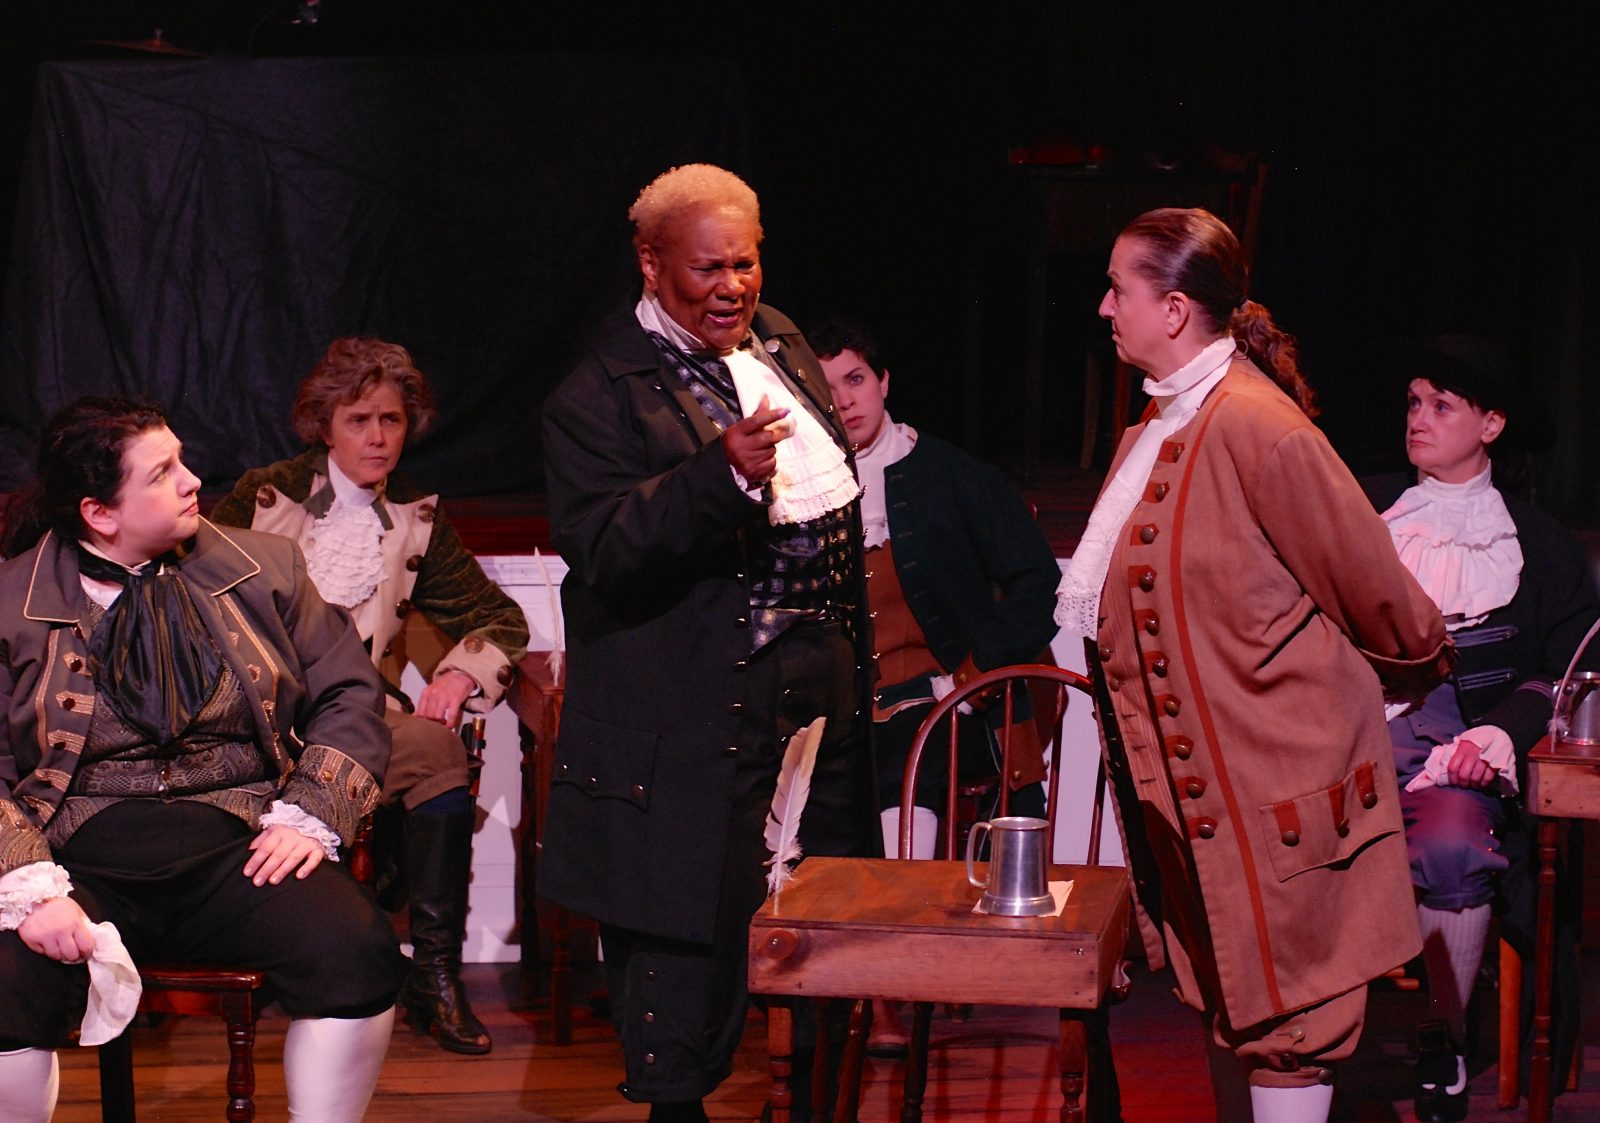 O'Connell & Company  presents an all-female version of '1776' with great success. It stars, from left, Sara Kovacsi,  Priscilla Young, Mary Craig, Marissa Biondolillo, Pamela Rose Mangus and Mary Moebius.